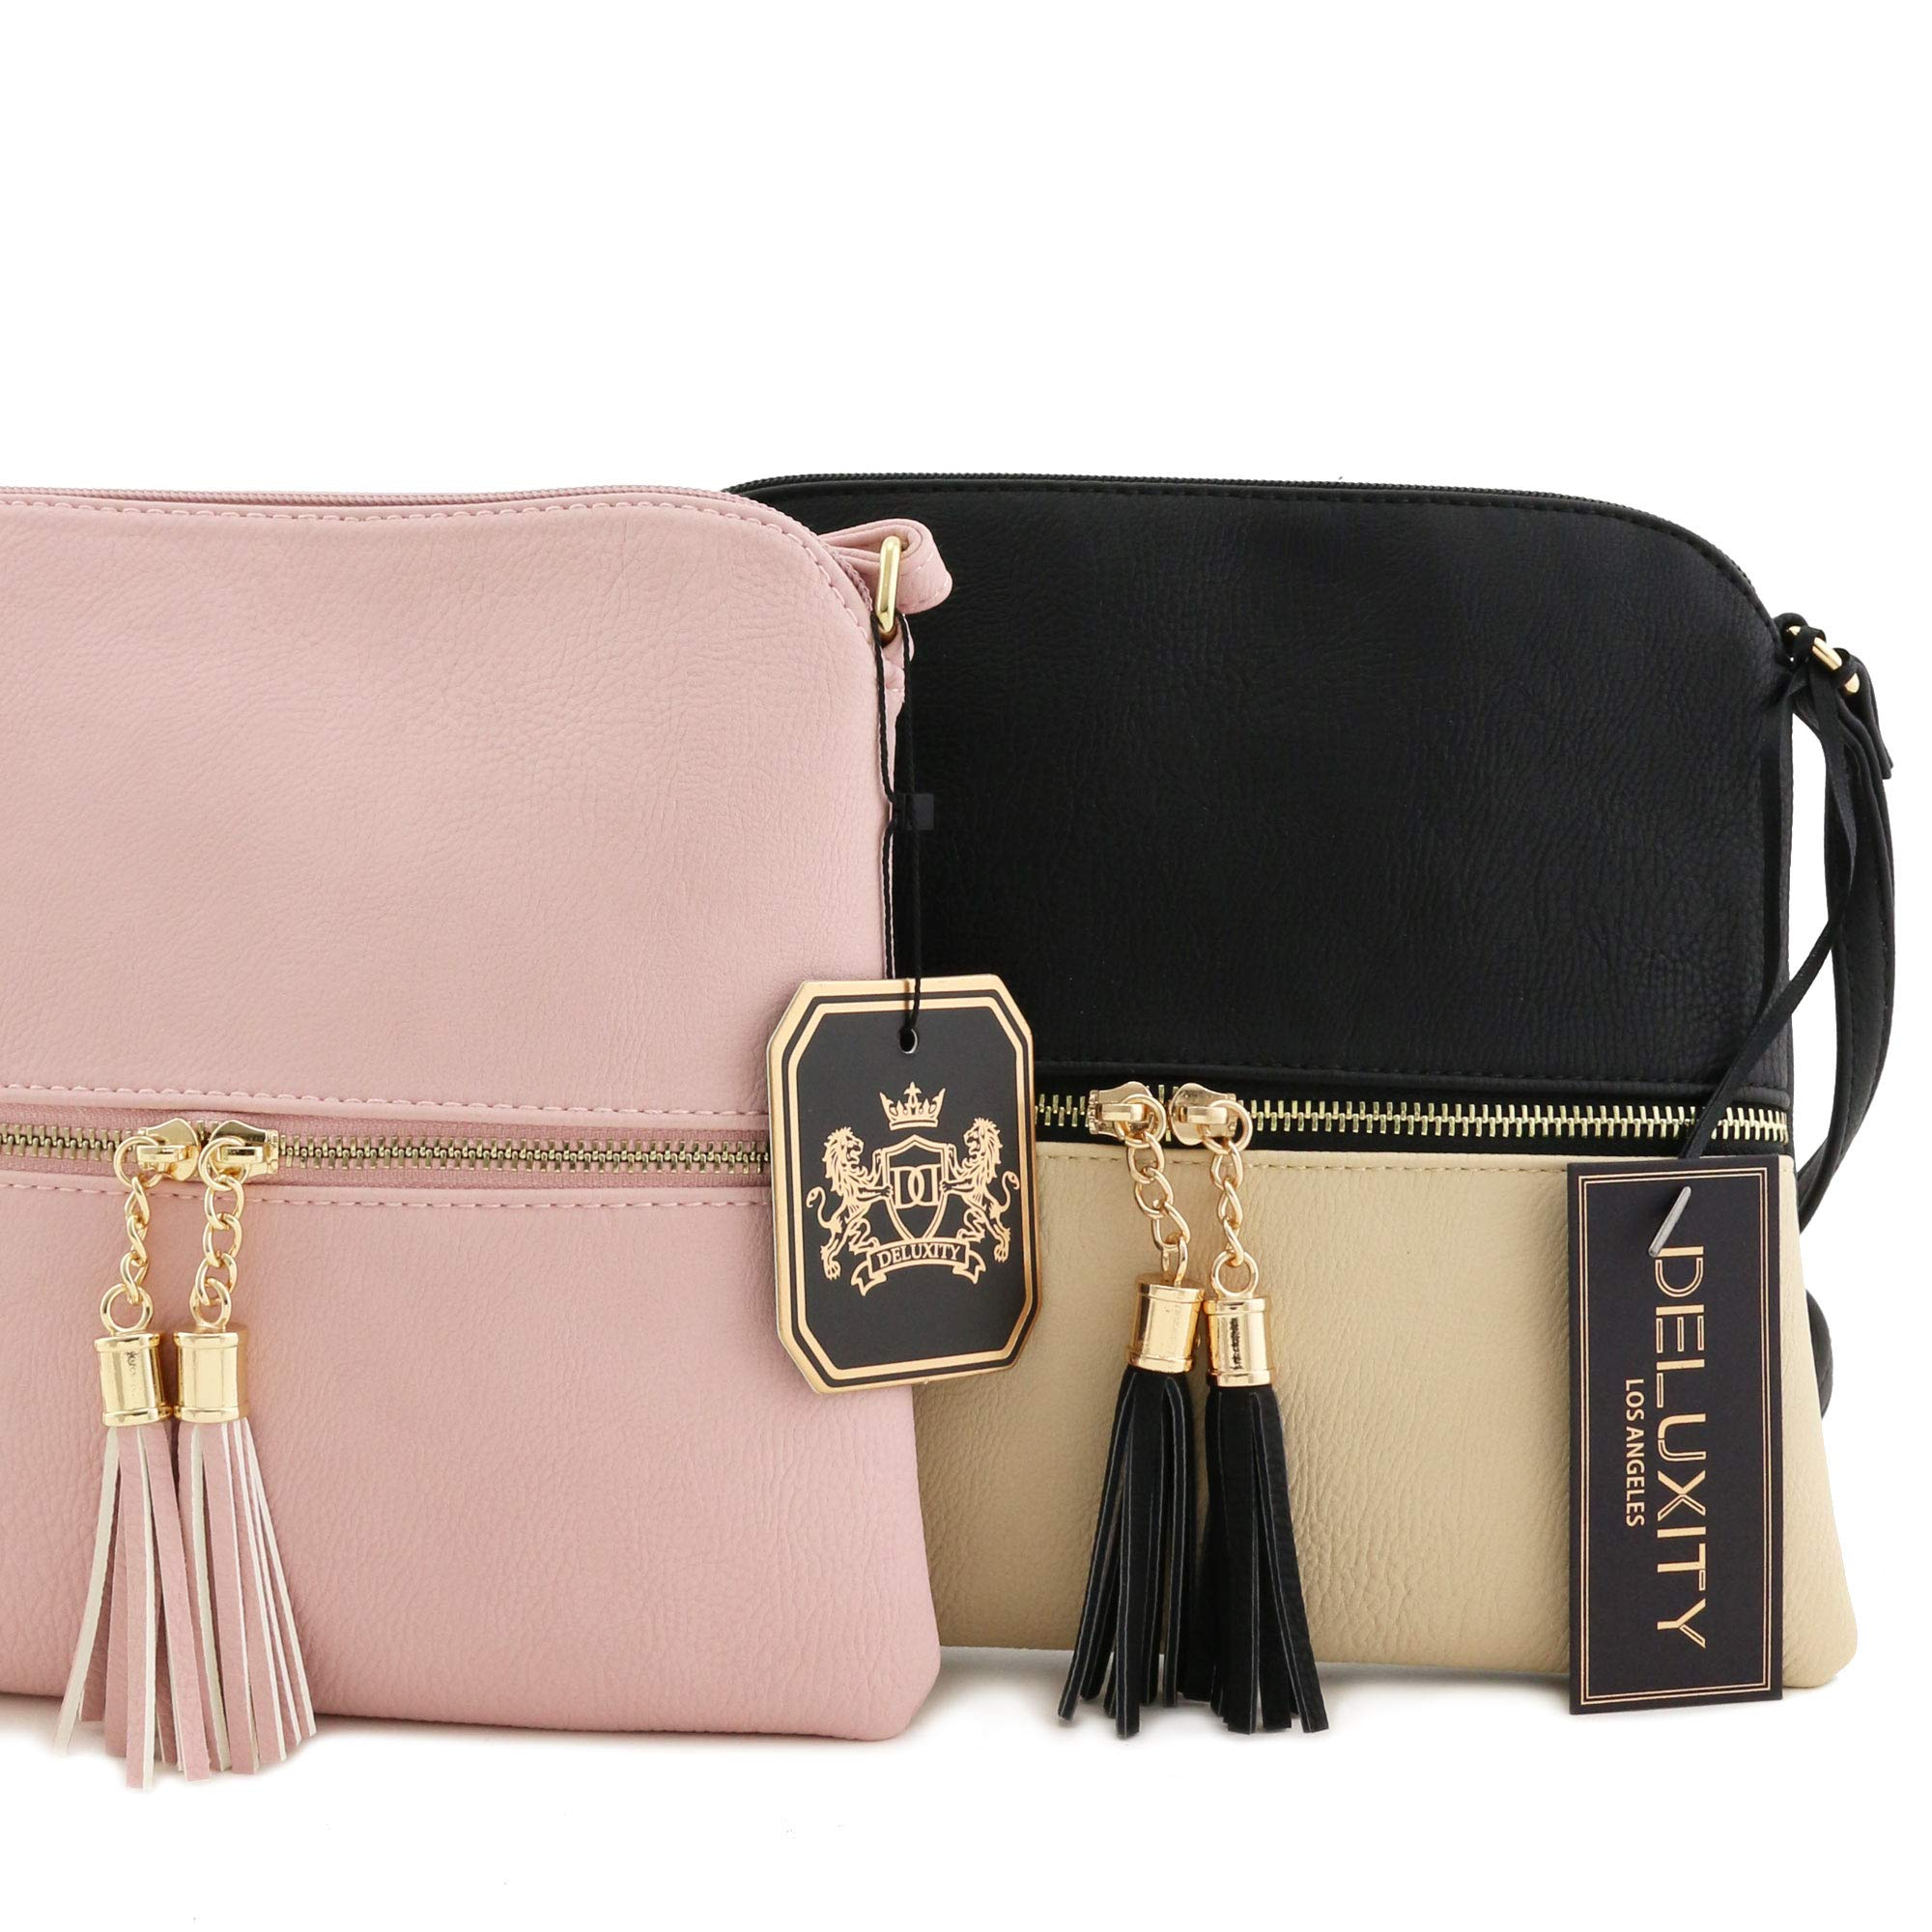 Lightweight Colorblock Medium Crossbody Bag with Tassel (Blush/White) by DELUXITY (Image #7)